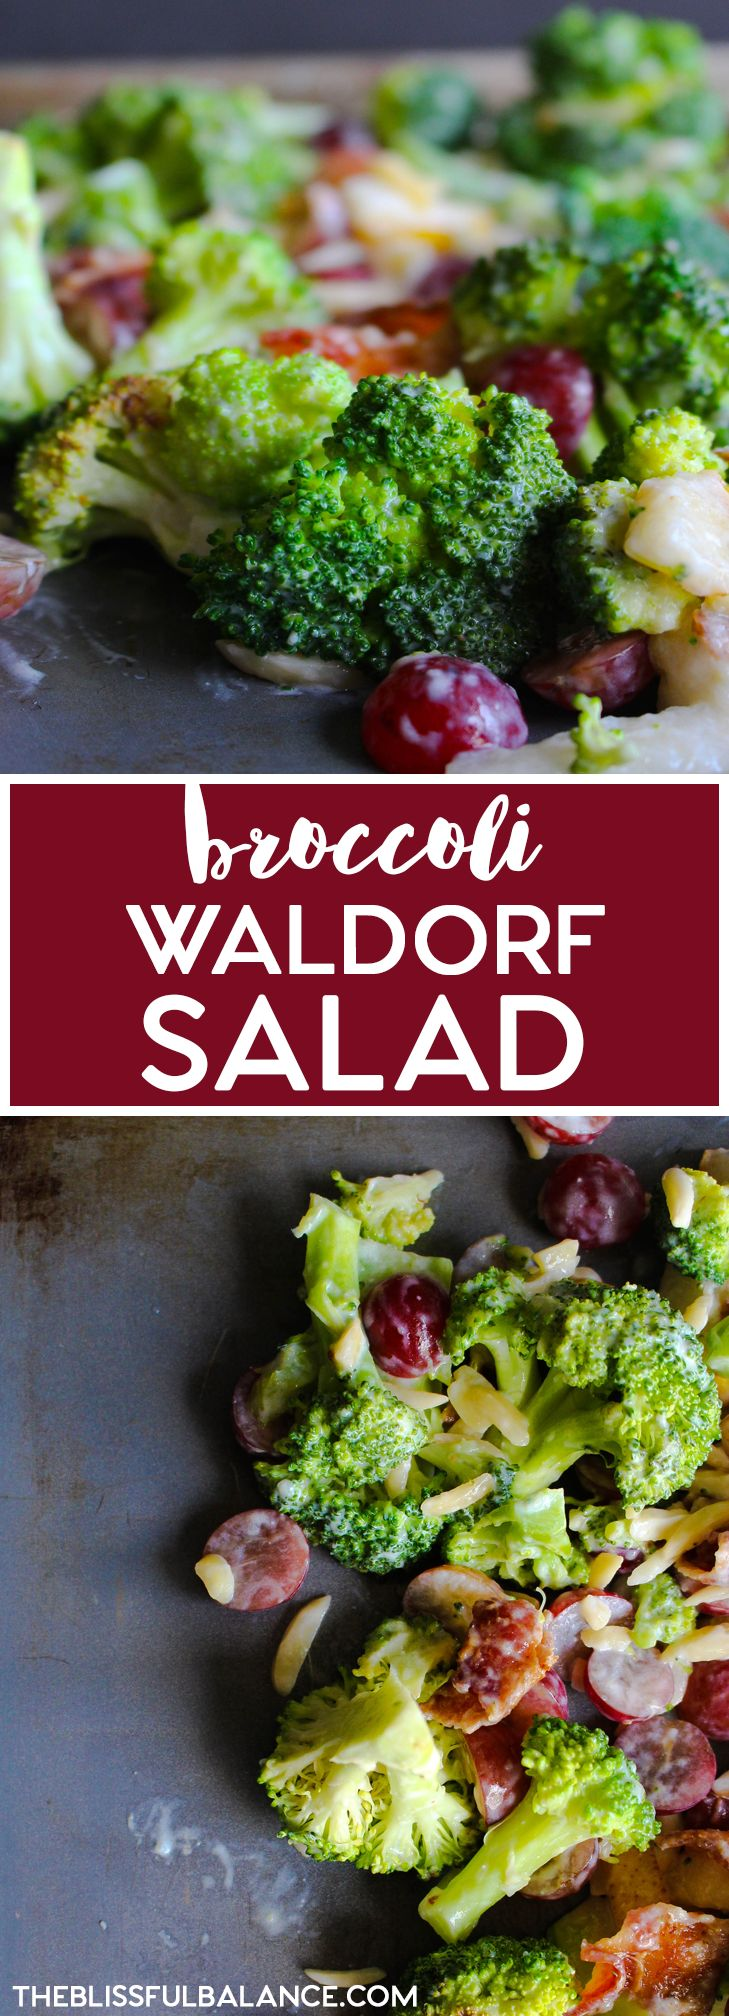 Broccoli Waldorf Salad | the blissful balance